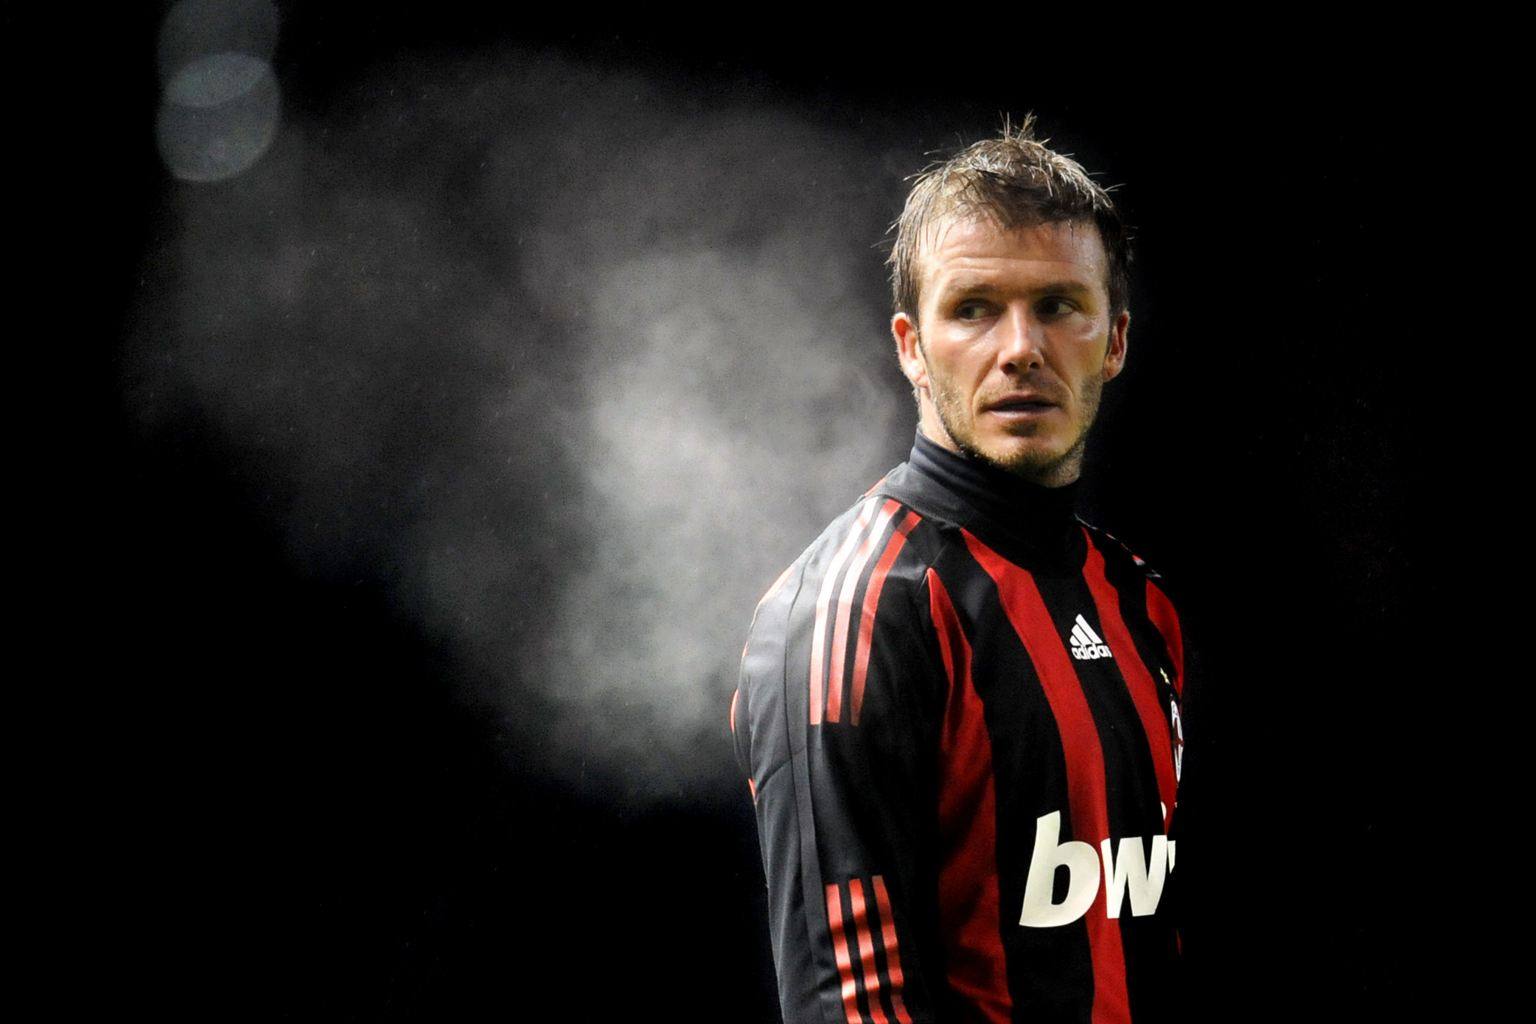 Gorgeous David Beckham Wallpaper Full HD Pictures 1536x1024